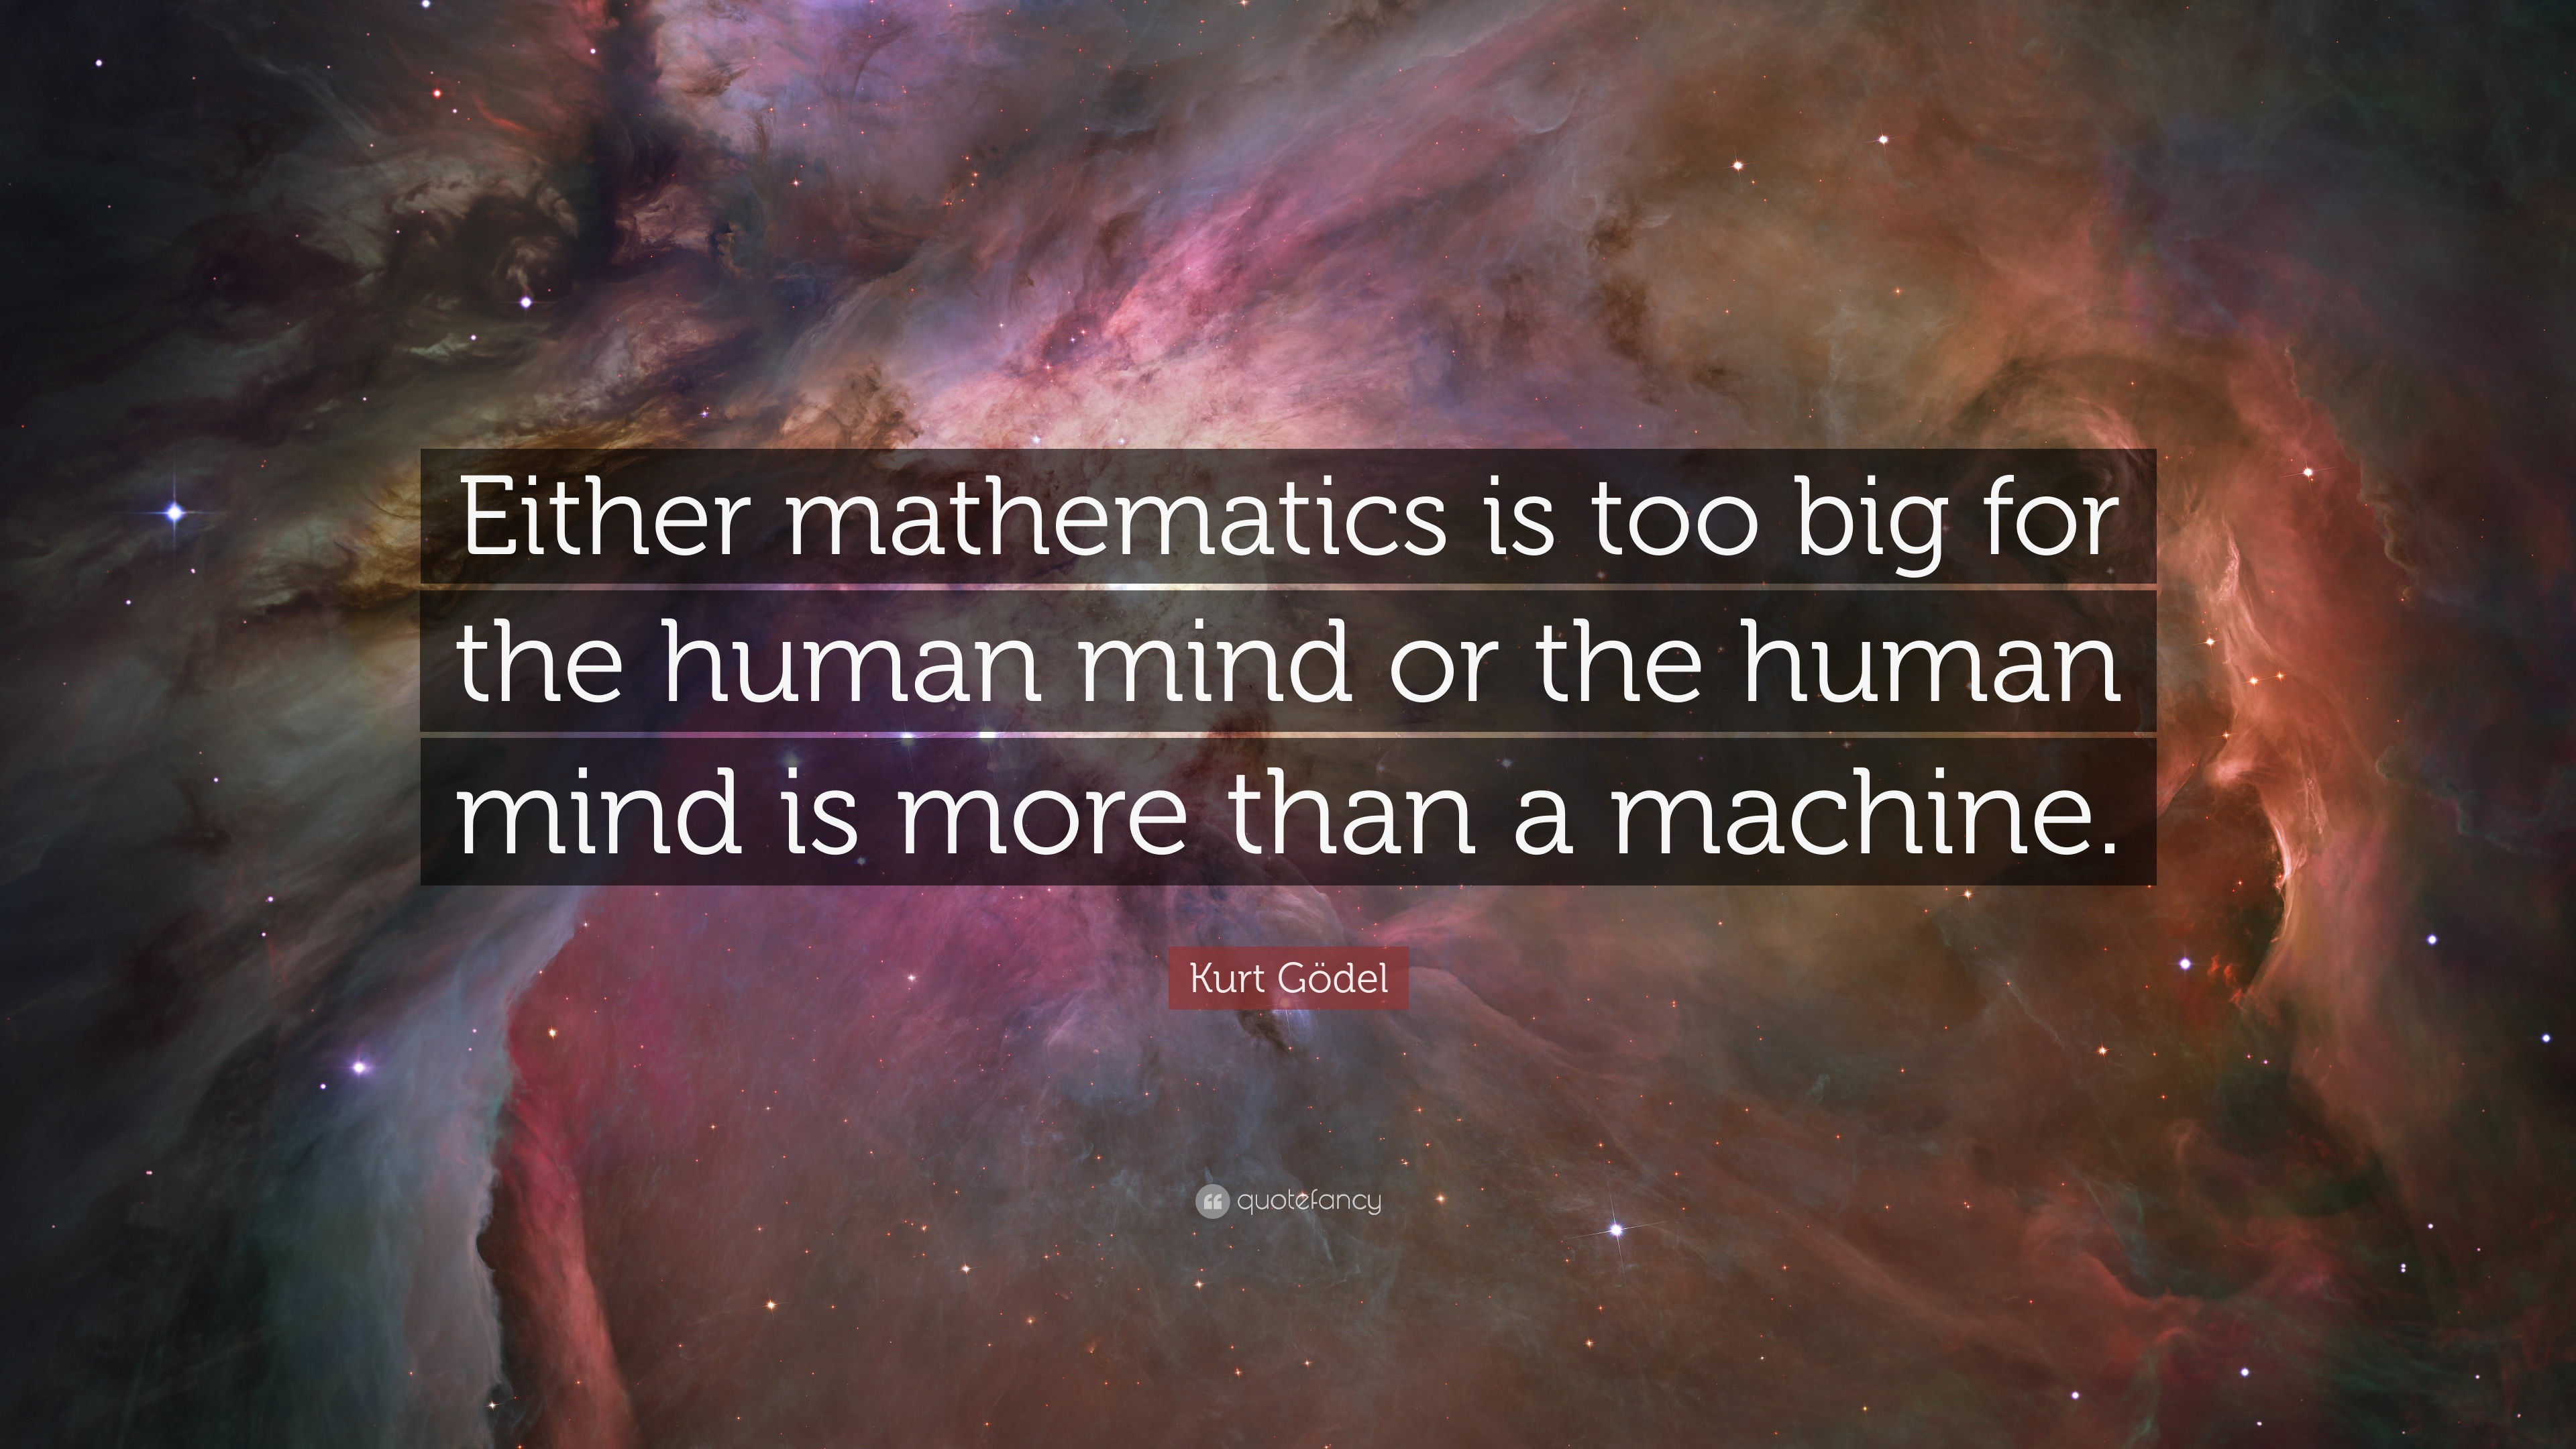 """Either mathematics is too big for the human mind or the human mind is more than a machine"" -Kurt Gödel"